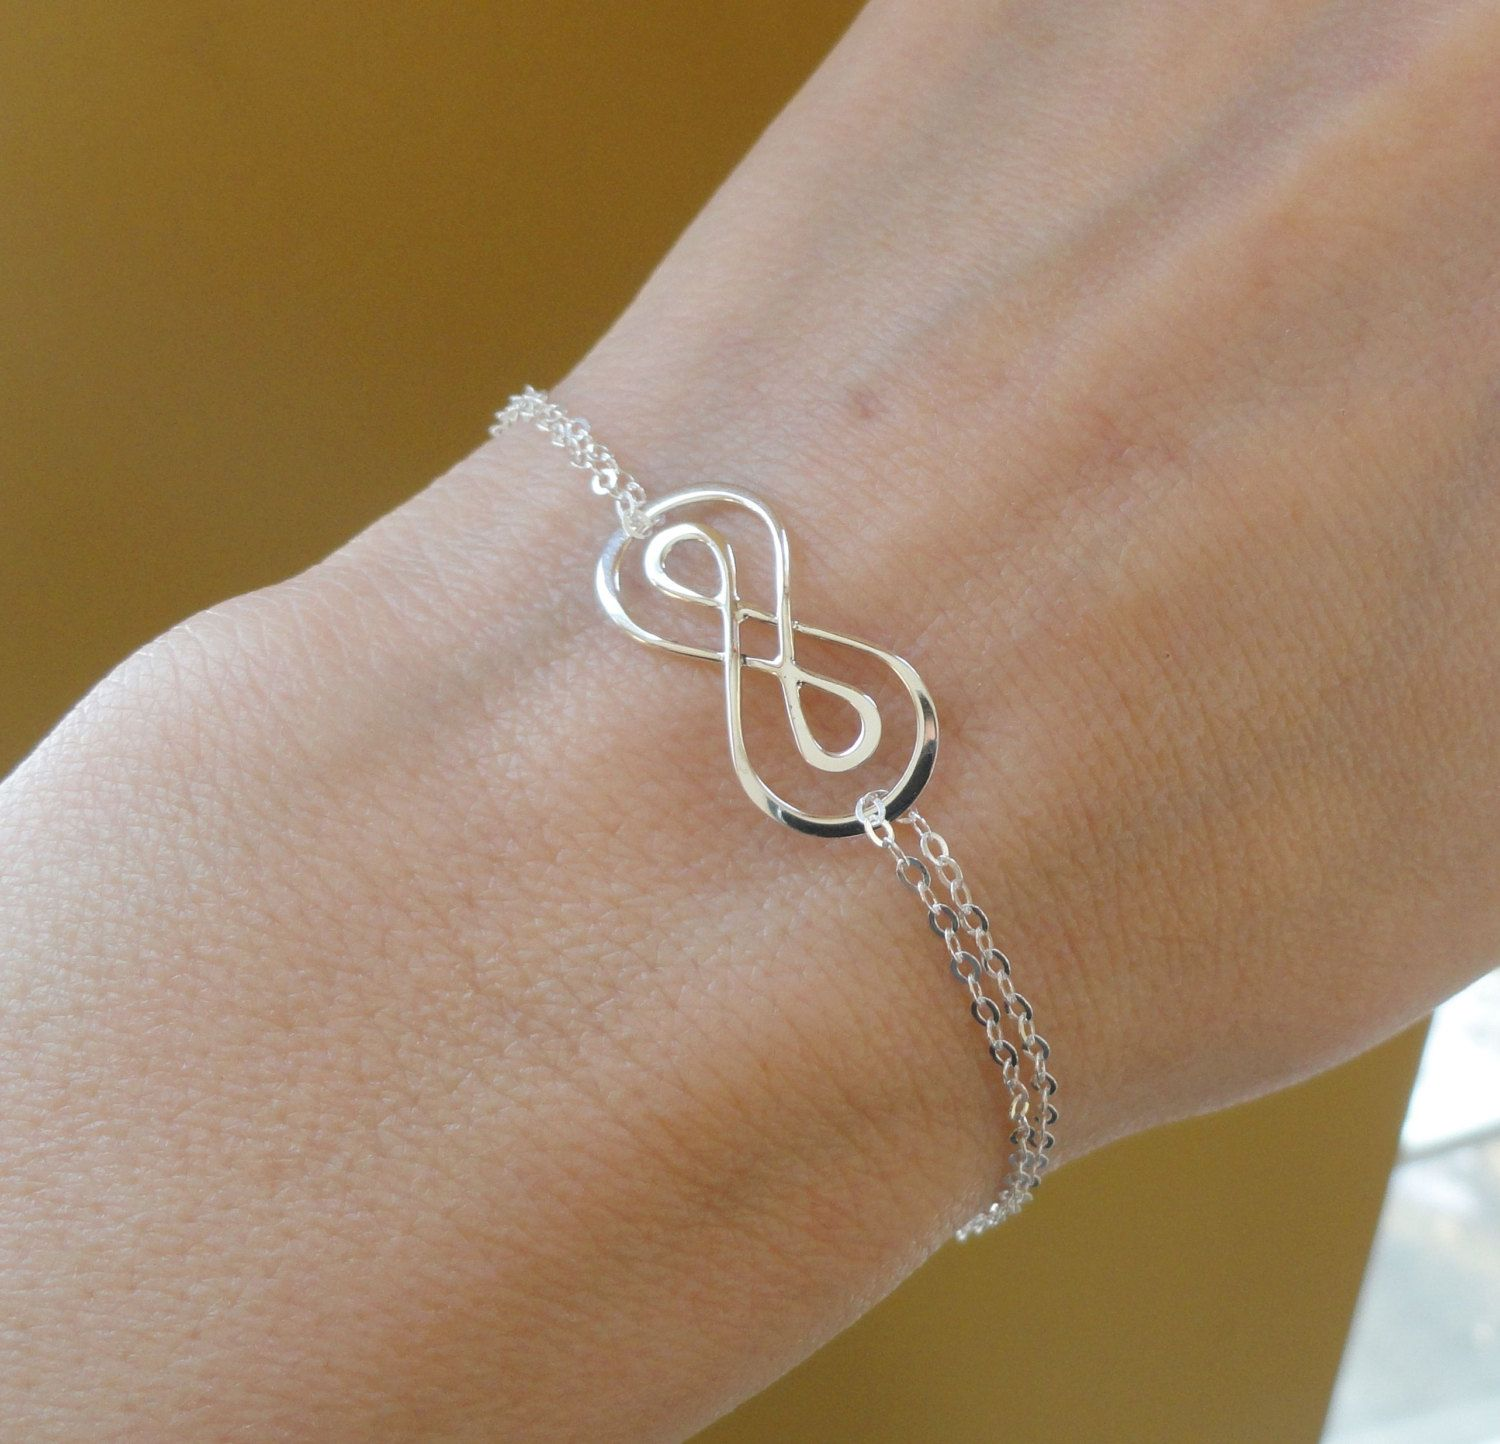 Silver double infinity symbol bracelet figure eight silver silver double infinity symbol bracelet figure eight silver infinity bracelet bridesmaid gifts biocorpaavc Image collections